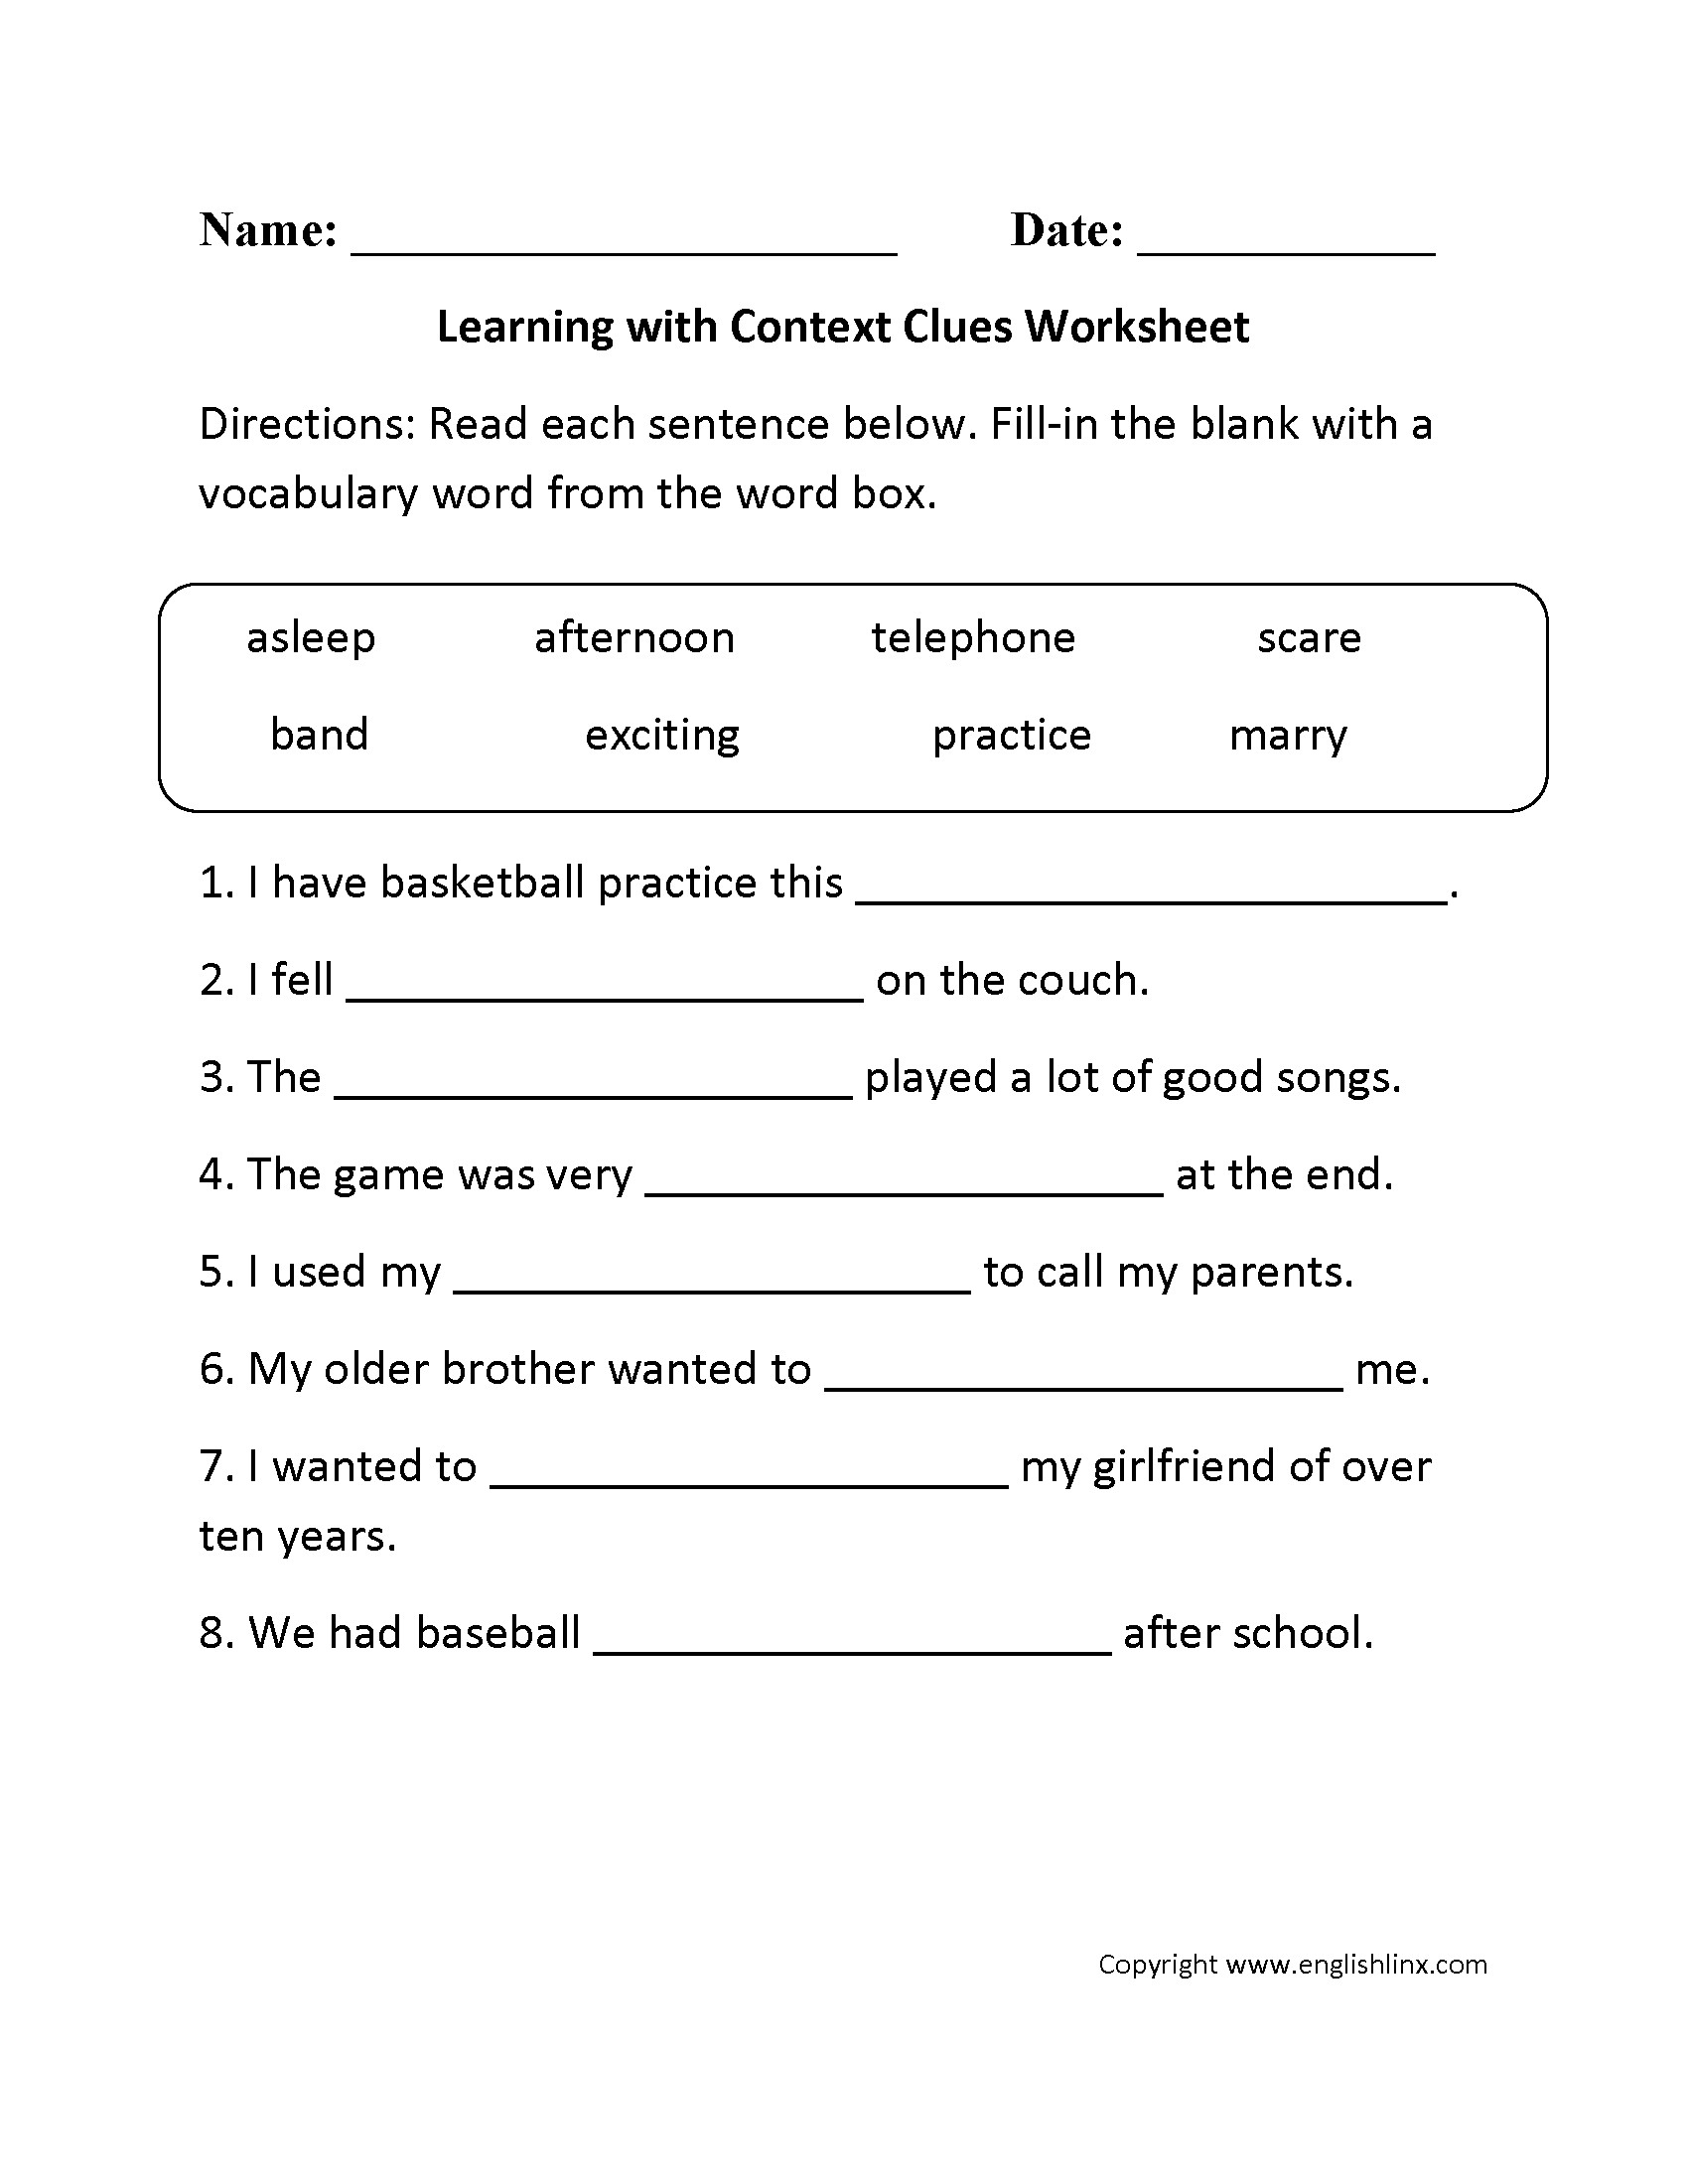 Context Clues 5th Grade Worksheets Ereading Worksheet Context Clues